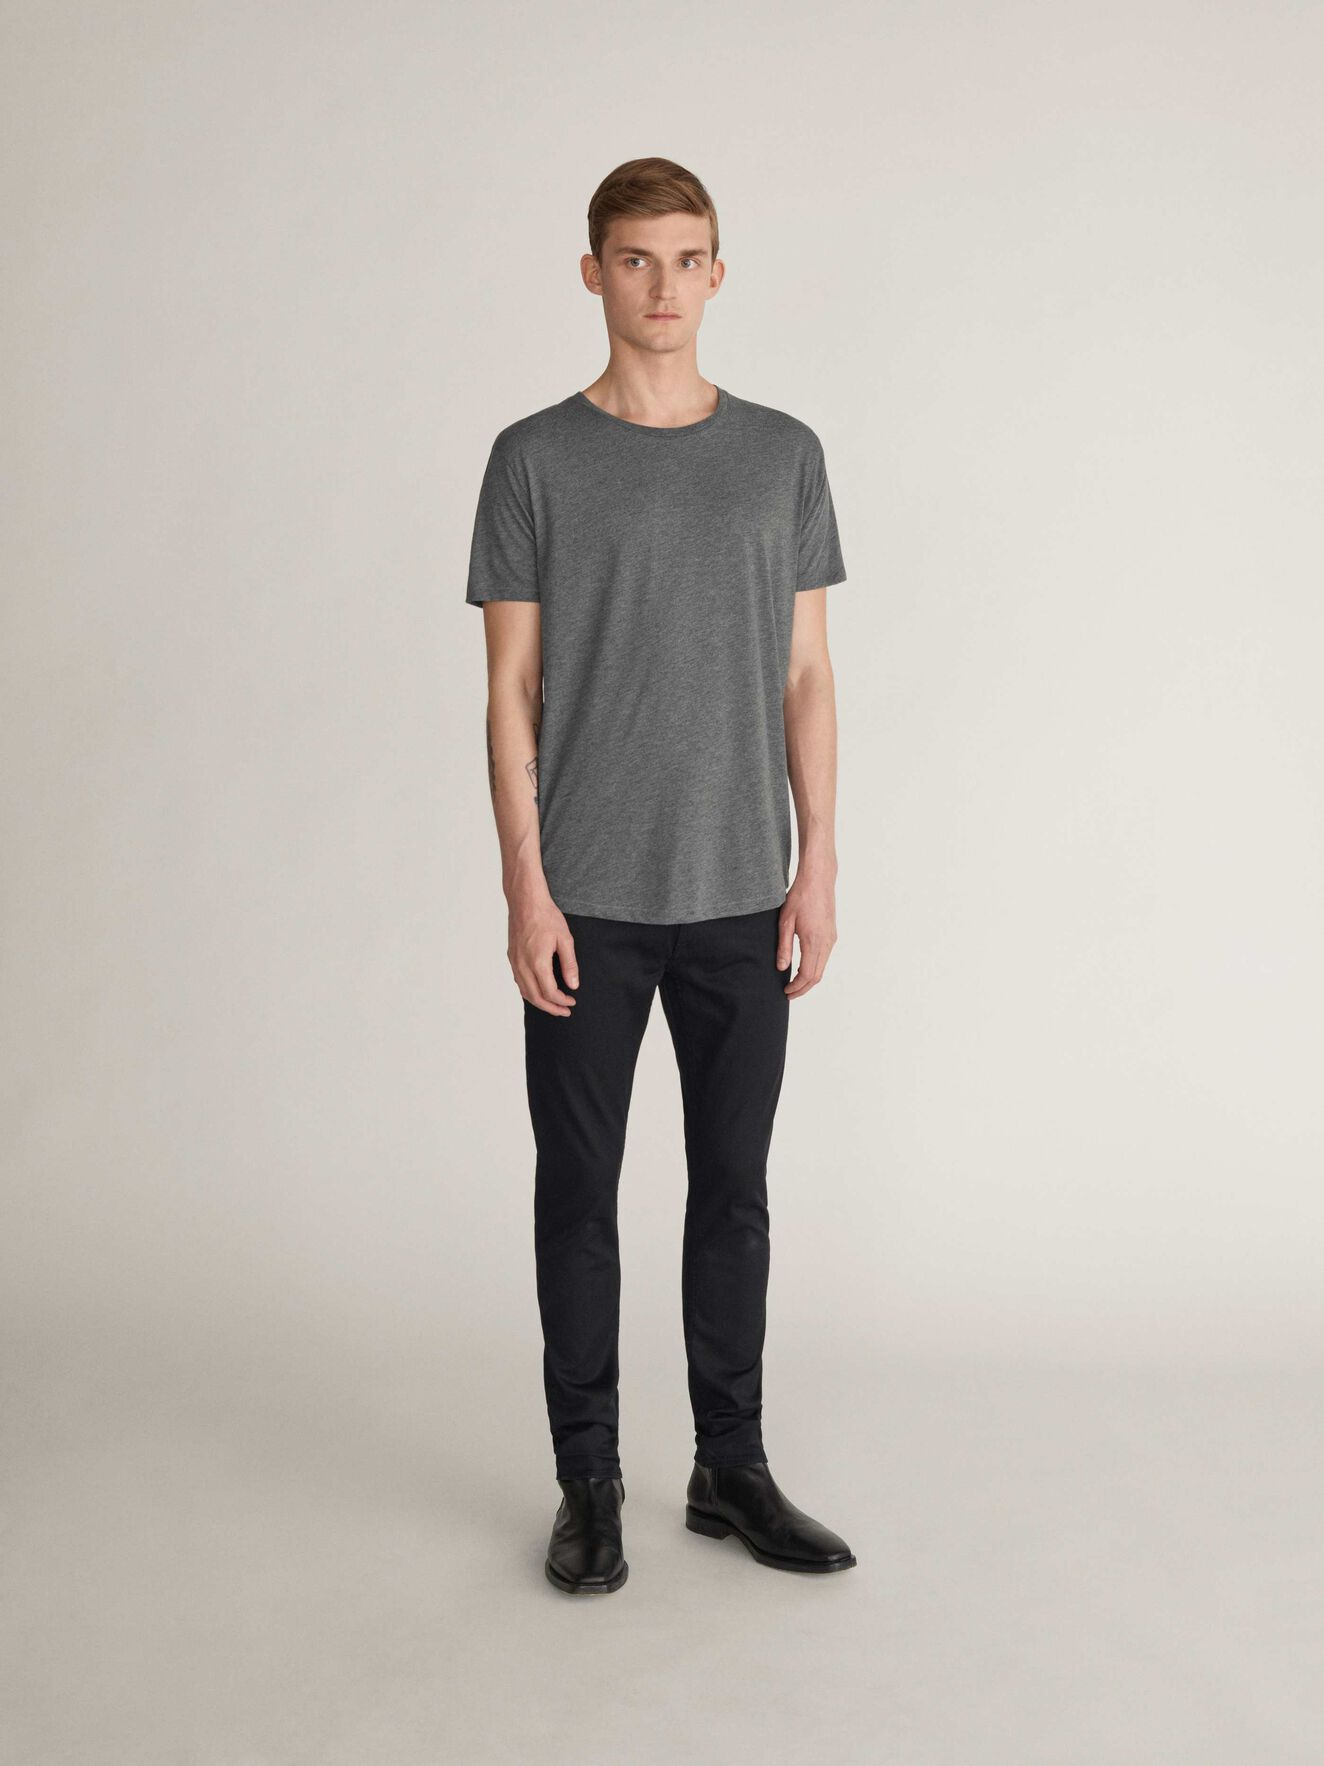 Corey Kurzarm-T-Shirt in Grey melange from Tiger of Sweden